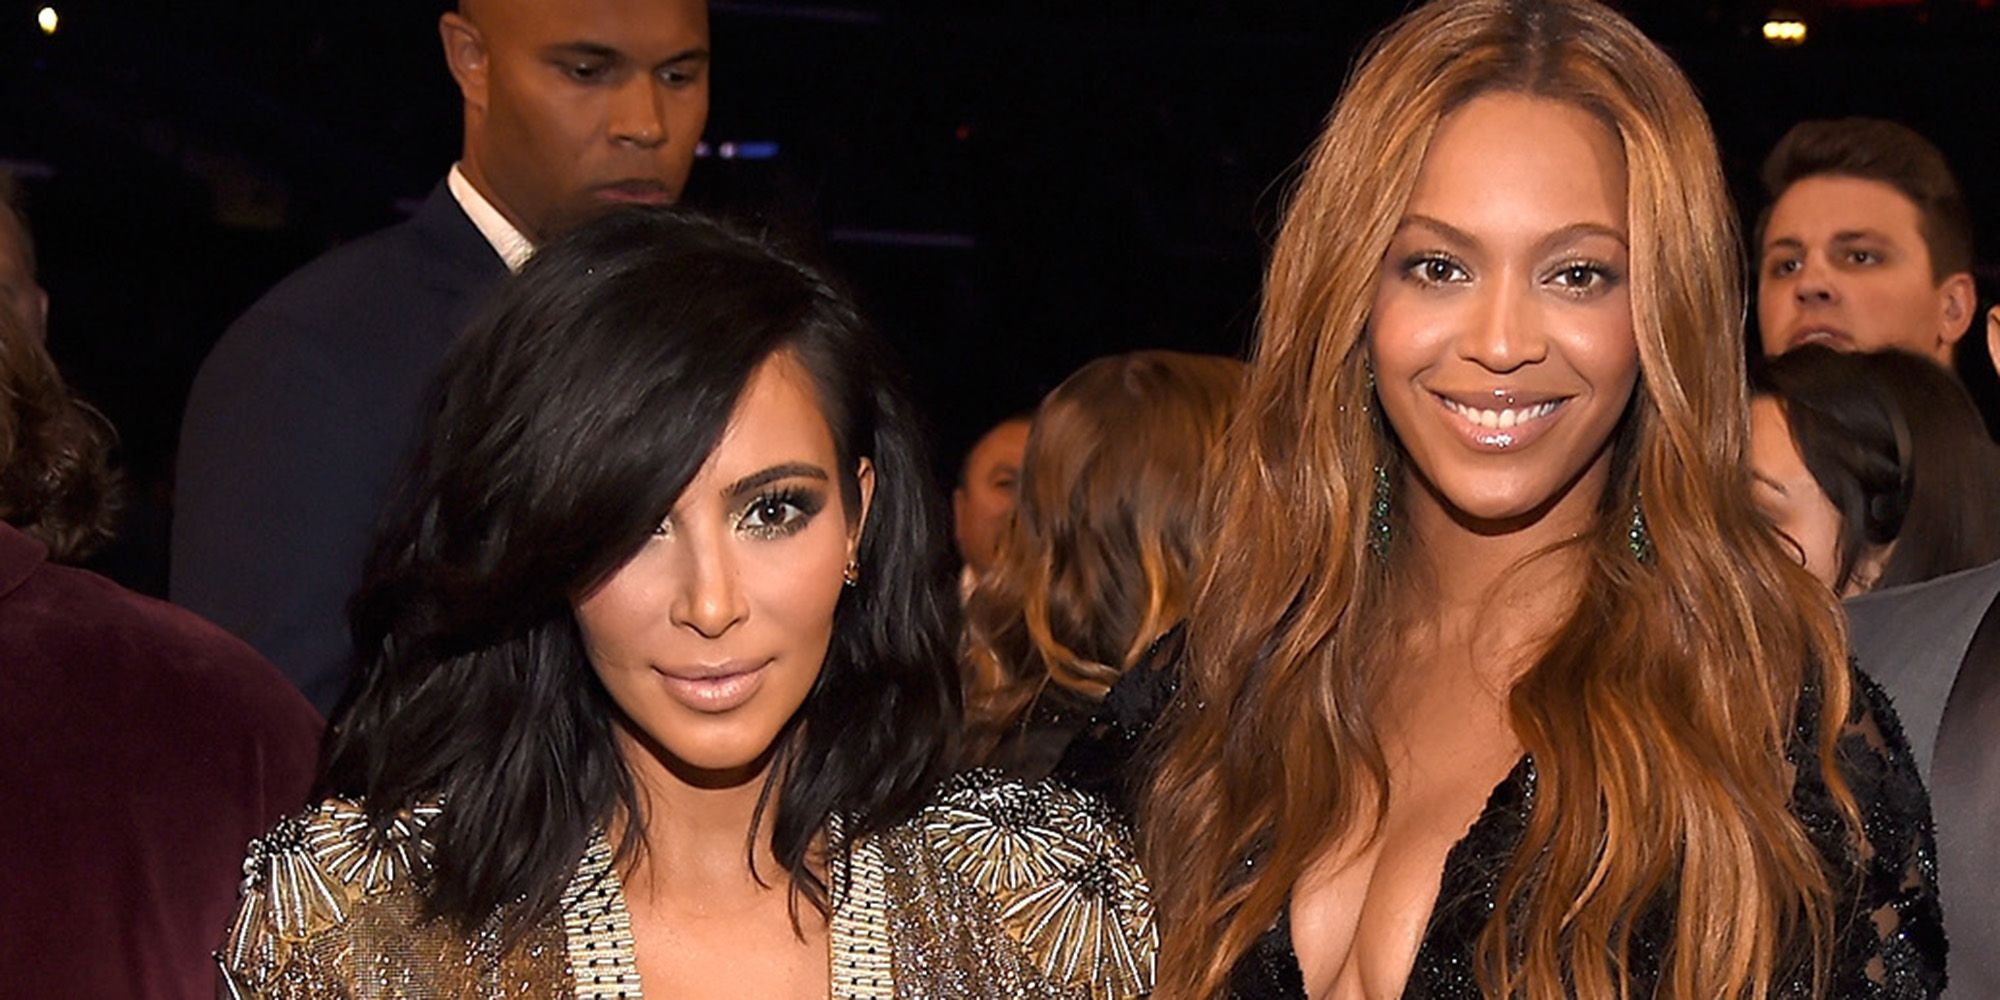 Beyonce Reportedly Gave Away the Presents Kim Kardashian Gifted HerTwins